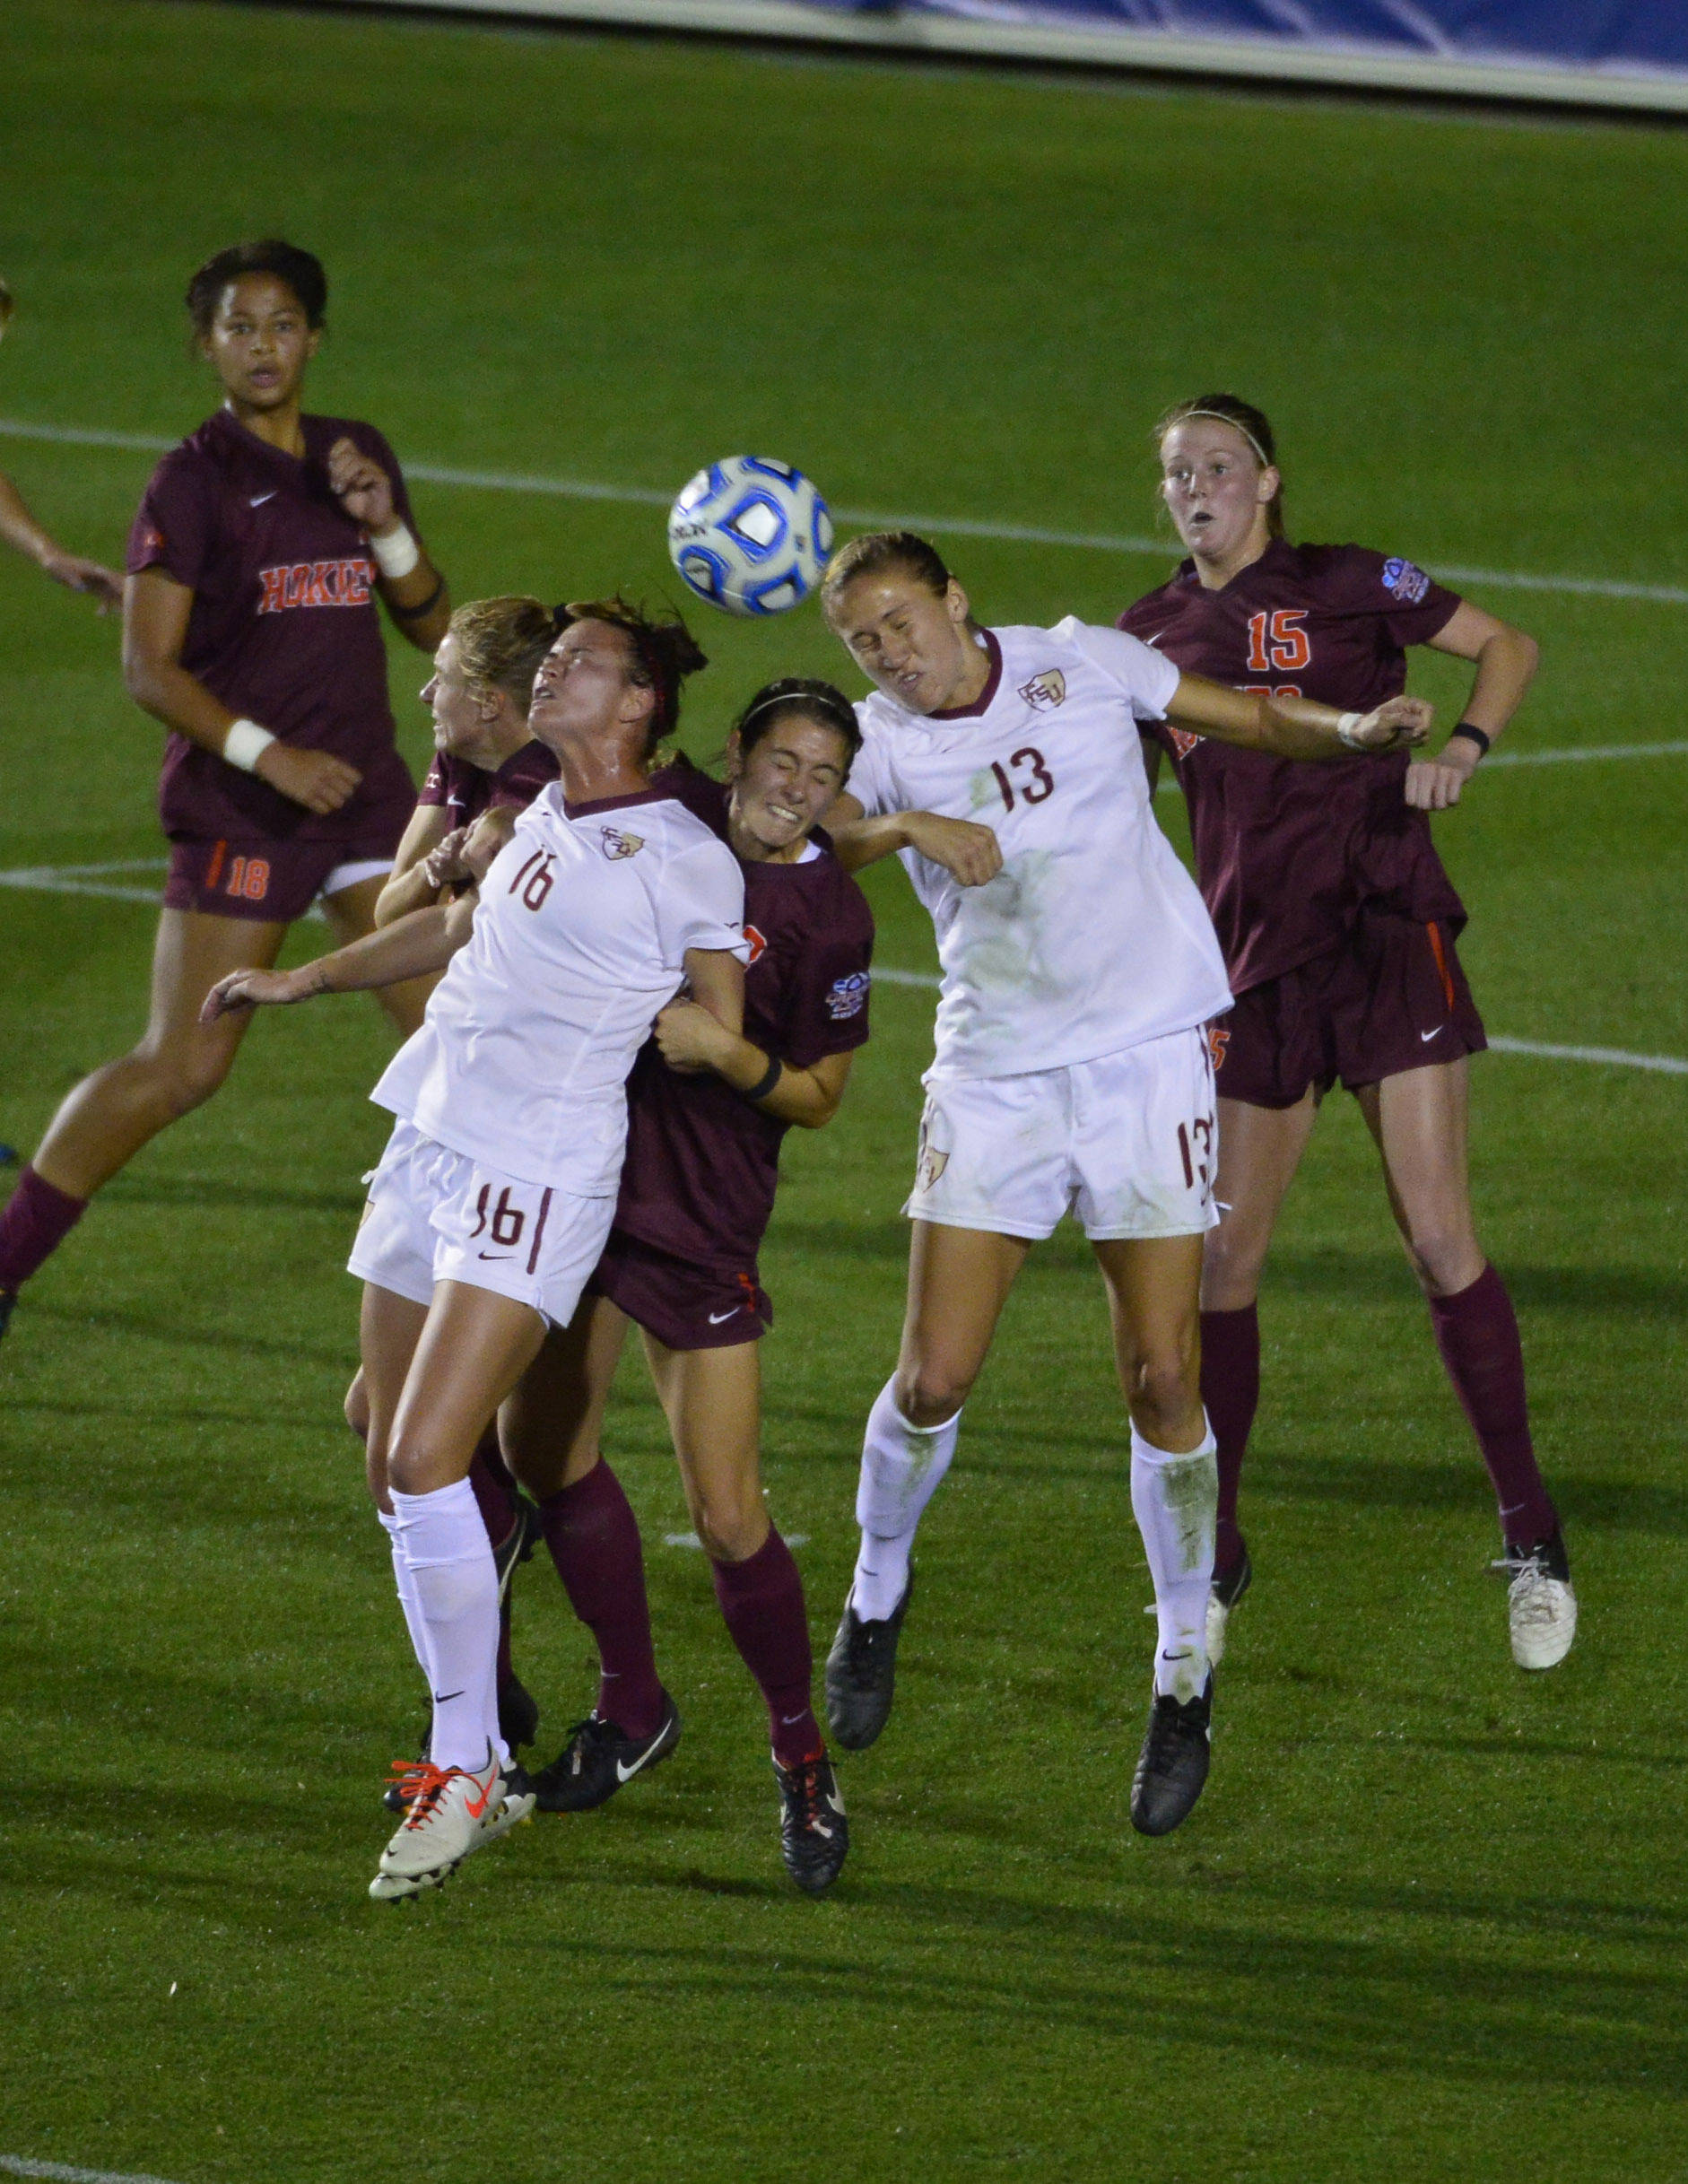 Dec 6, 2013; Cary, NC, USA; Florida State Seminoles defender Carson Pickett (16) and defender Kristin Grubka (13) and Virginia Tech Hokies midfielder Candace Cephers (18) and defender Jodie Zelenky (6) and defender Danielle King (8) and midfielder Ashley Meier (15) fight for the ball in the second half. The Seminoles defeated the Hokies 3-2 at WakeMed Soccer Park. Mandatory Credit: Bob Donnan-USA TODAY Sports